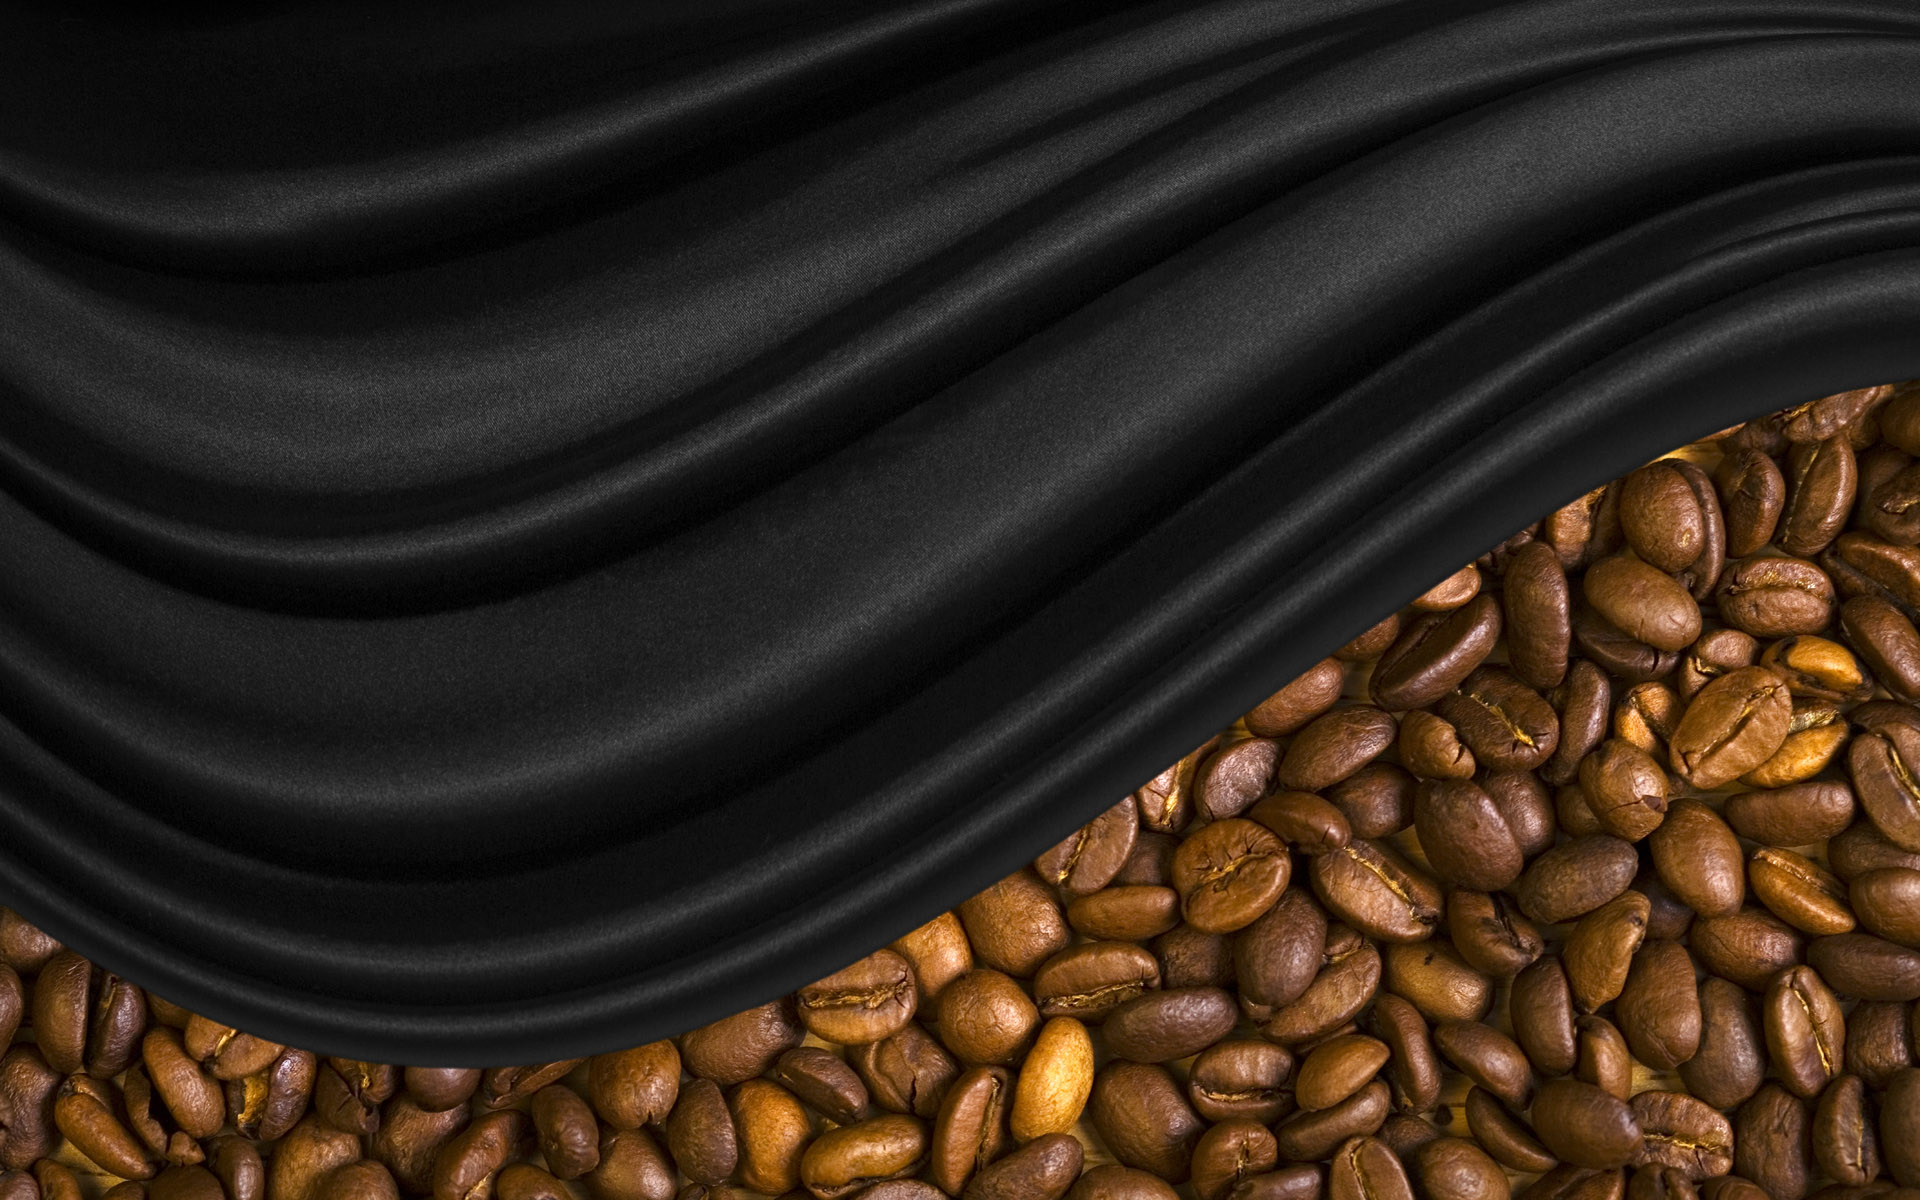 Coffee and coffee beans close-up 16668